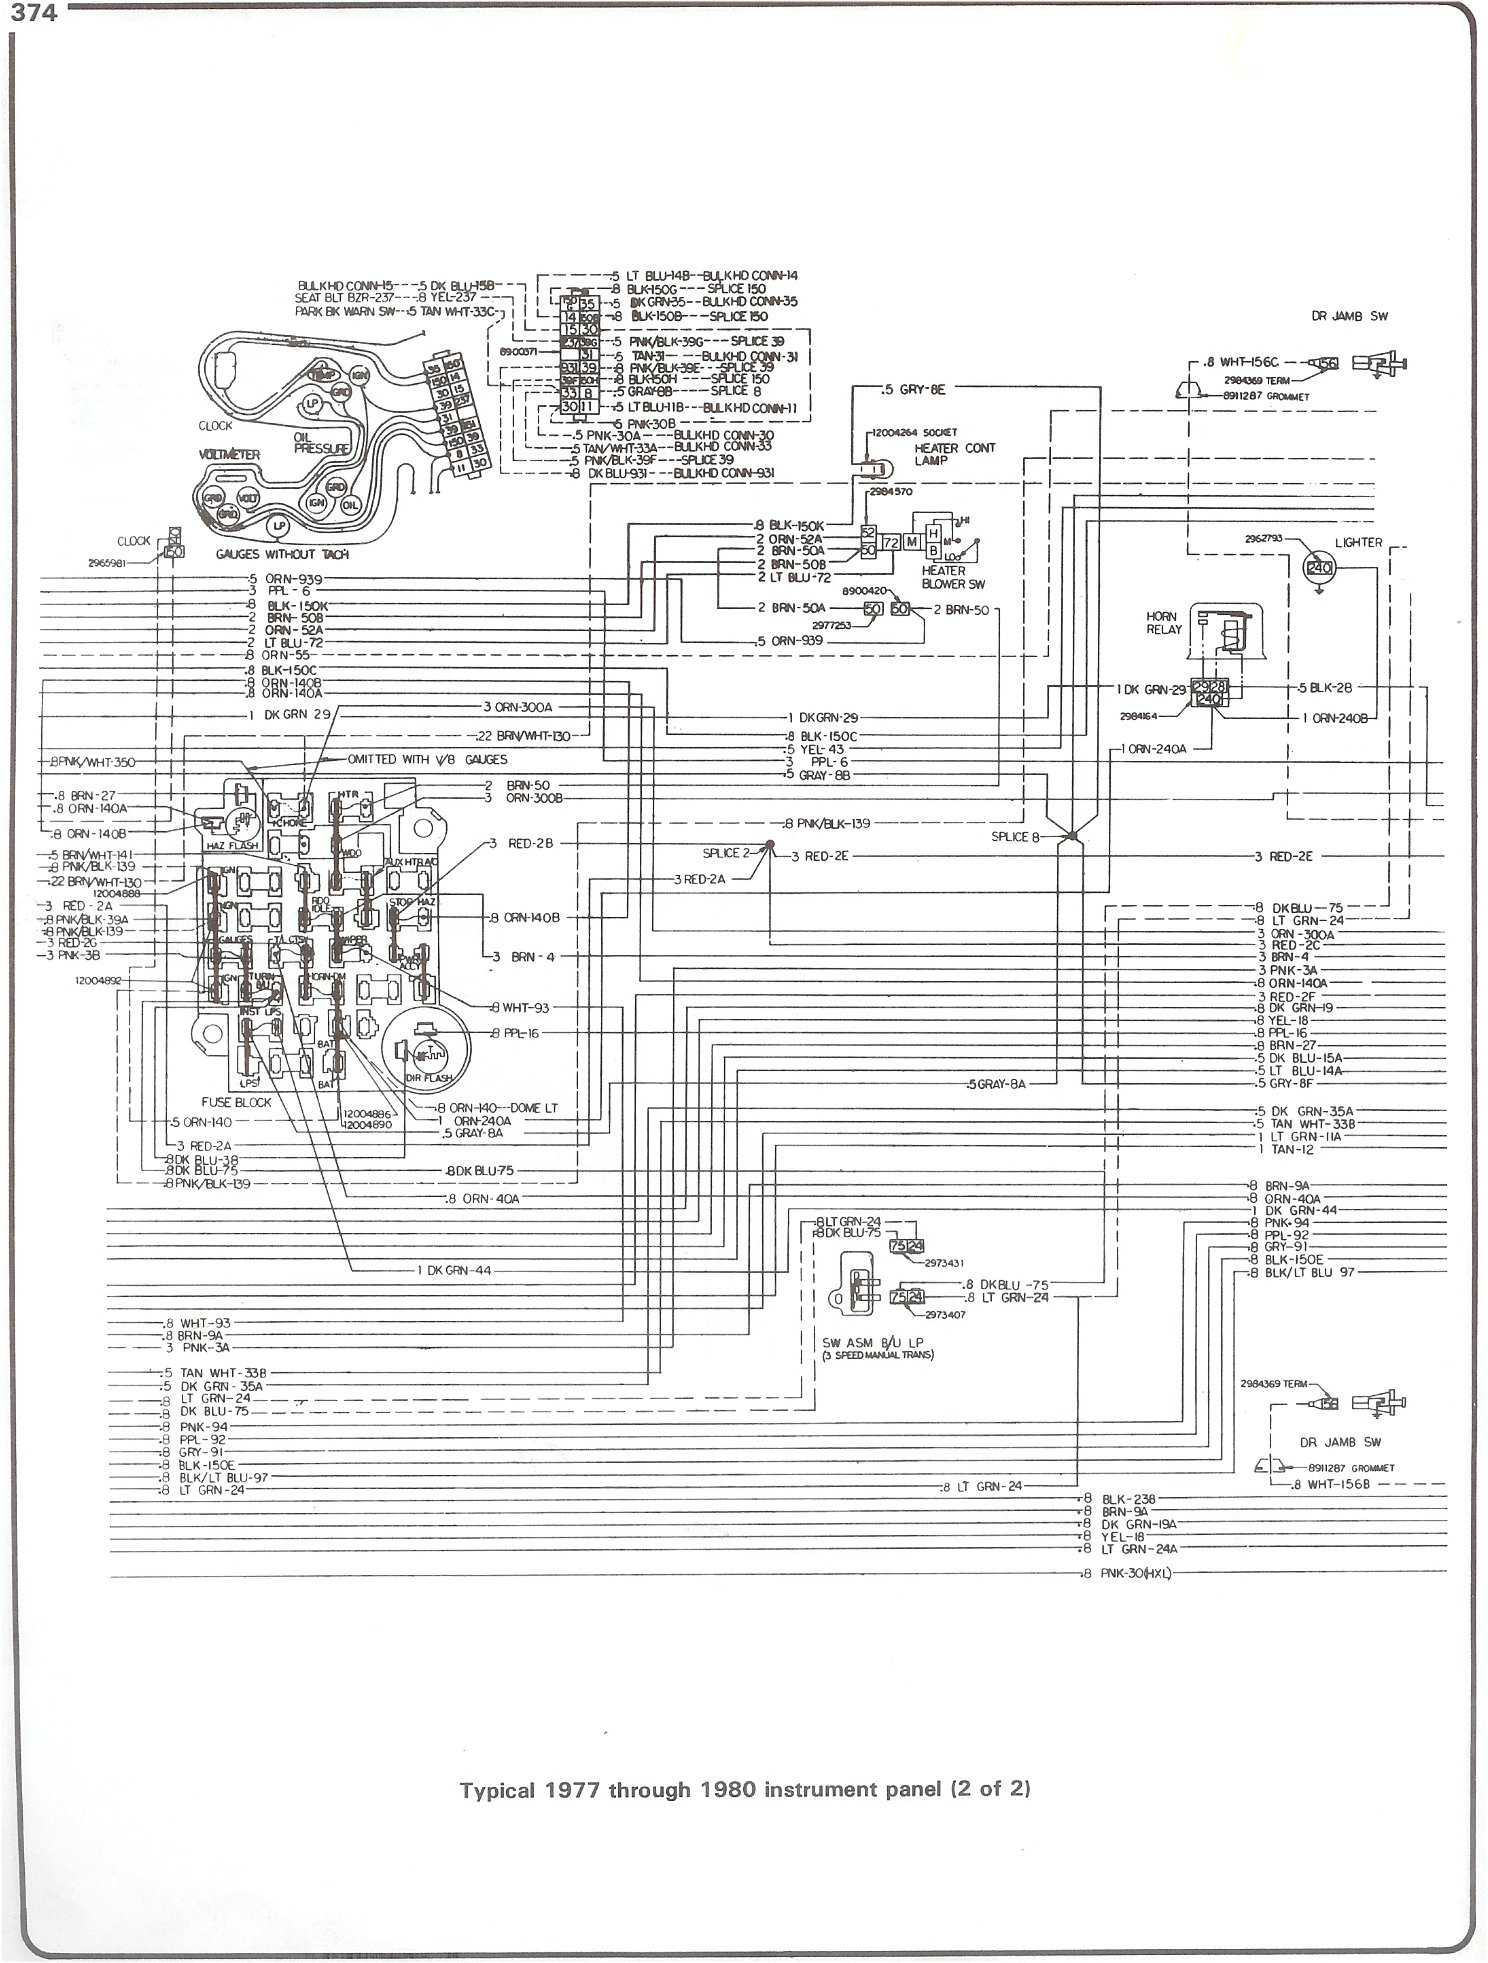 88 Chevy 3500 Distributor Wiring Diagram Library Suburban Wire 77 80 Intrument Panel Page 2 Complete 73 87 Diagrams